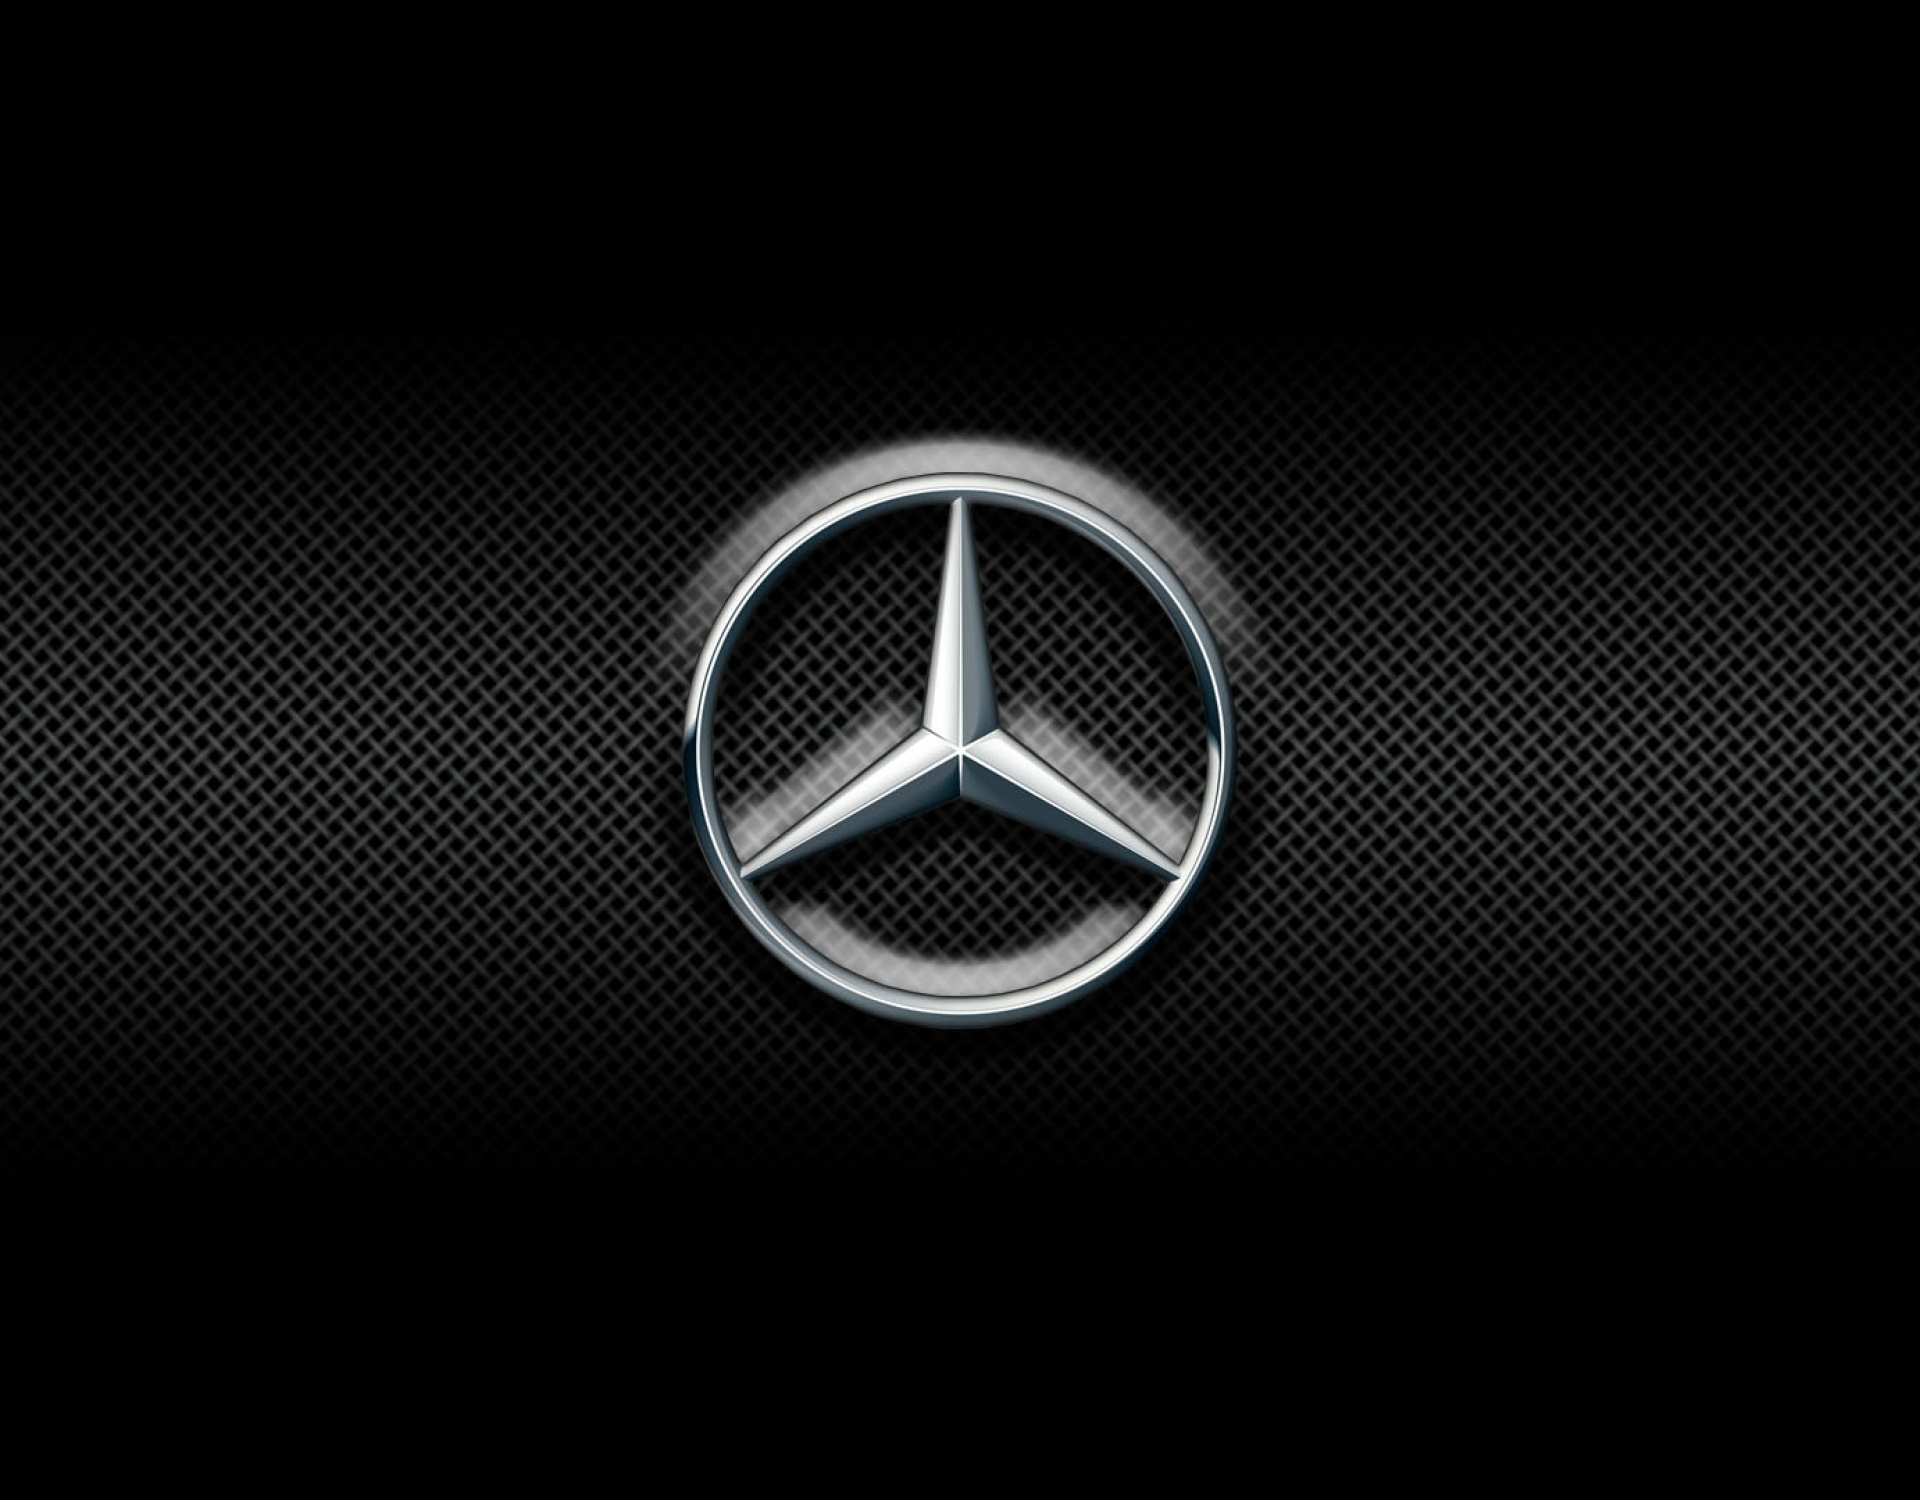 Car Logo Wallpaper 14 Hd Wallpapers Hd Images Hd Pictures